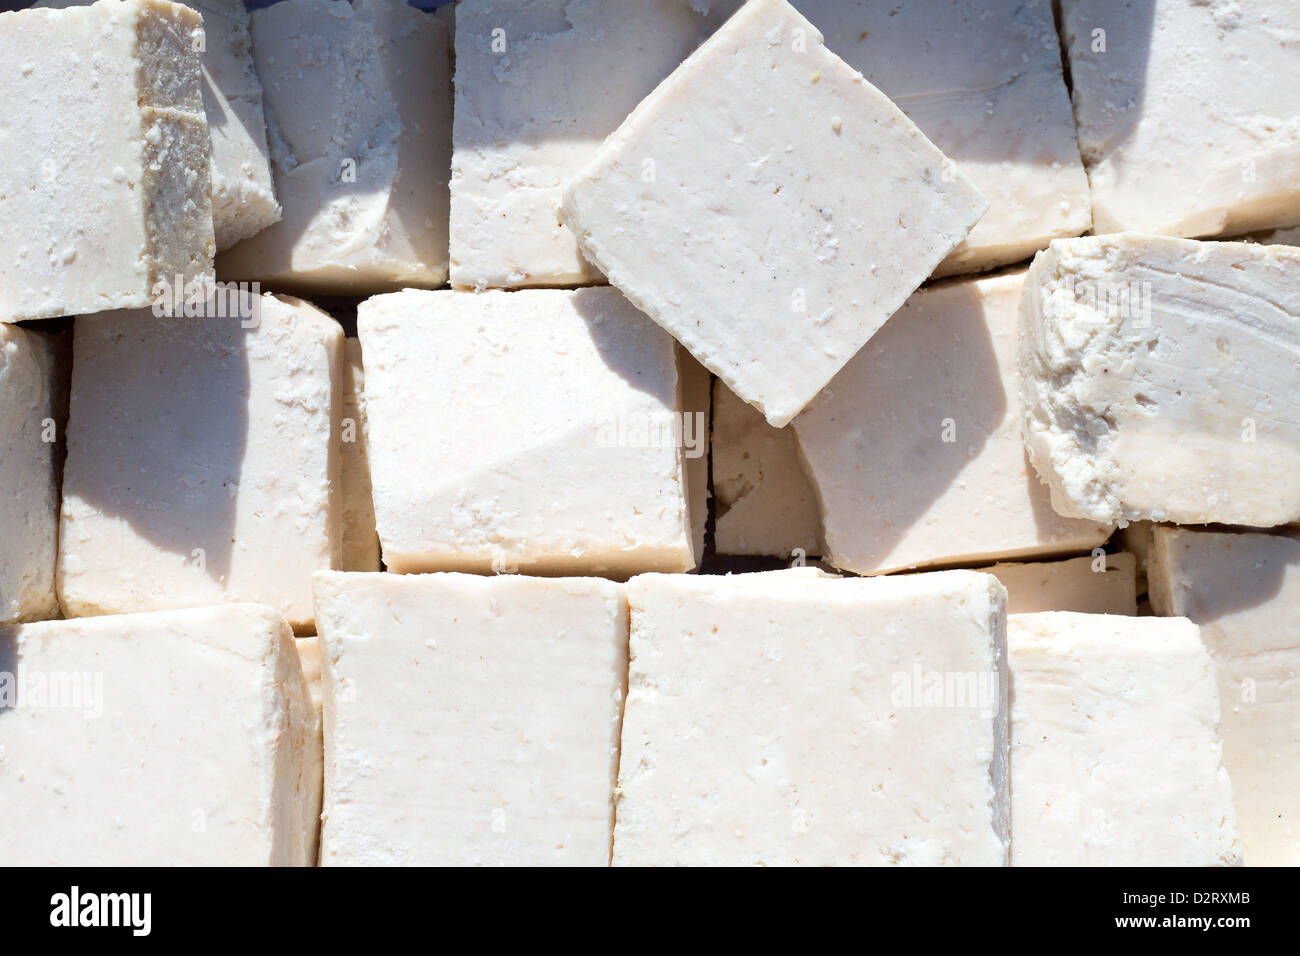 traditionally manufactured soap win white cubes pattern texture - Stock Image